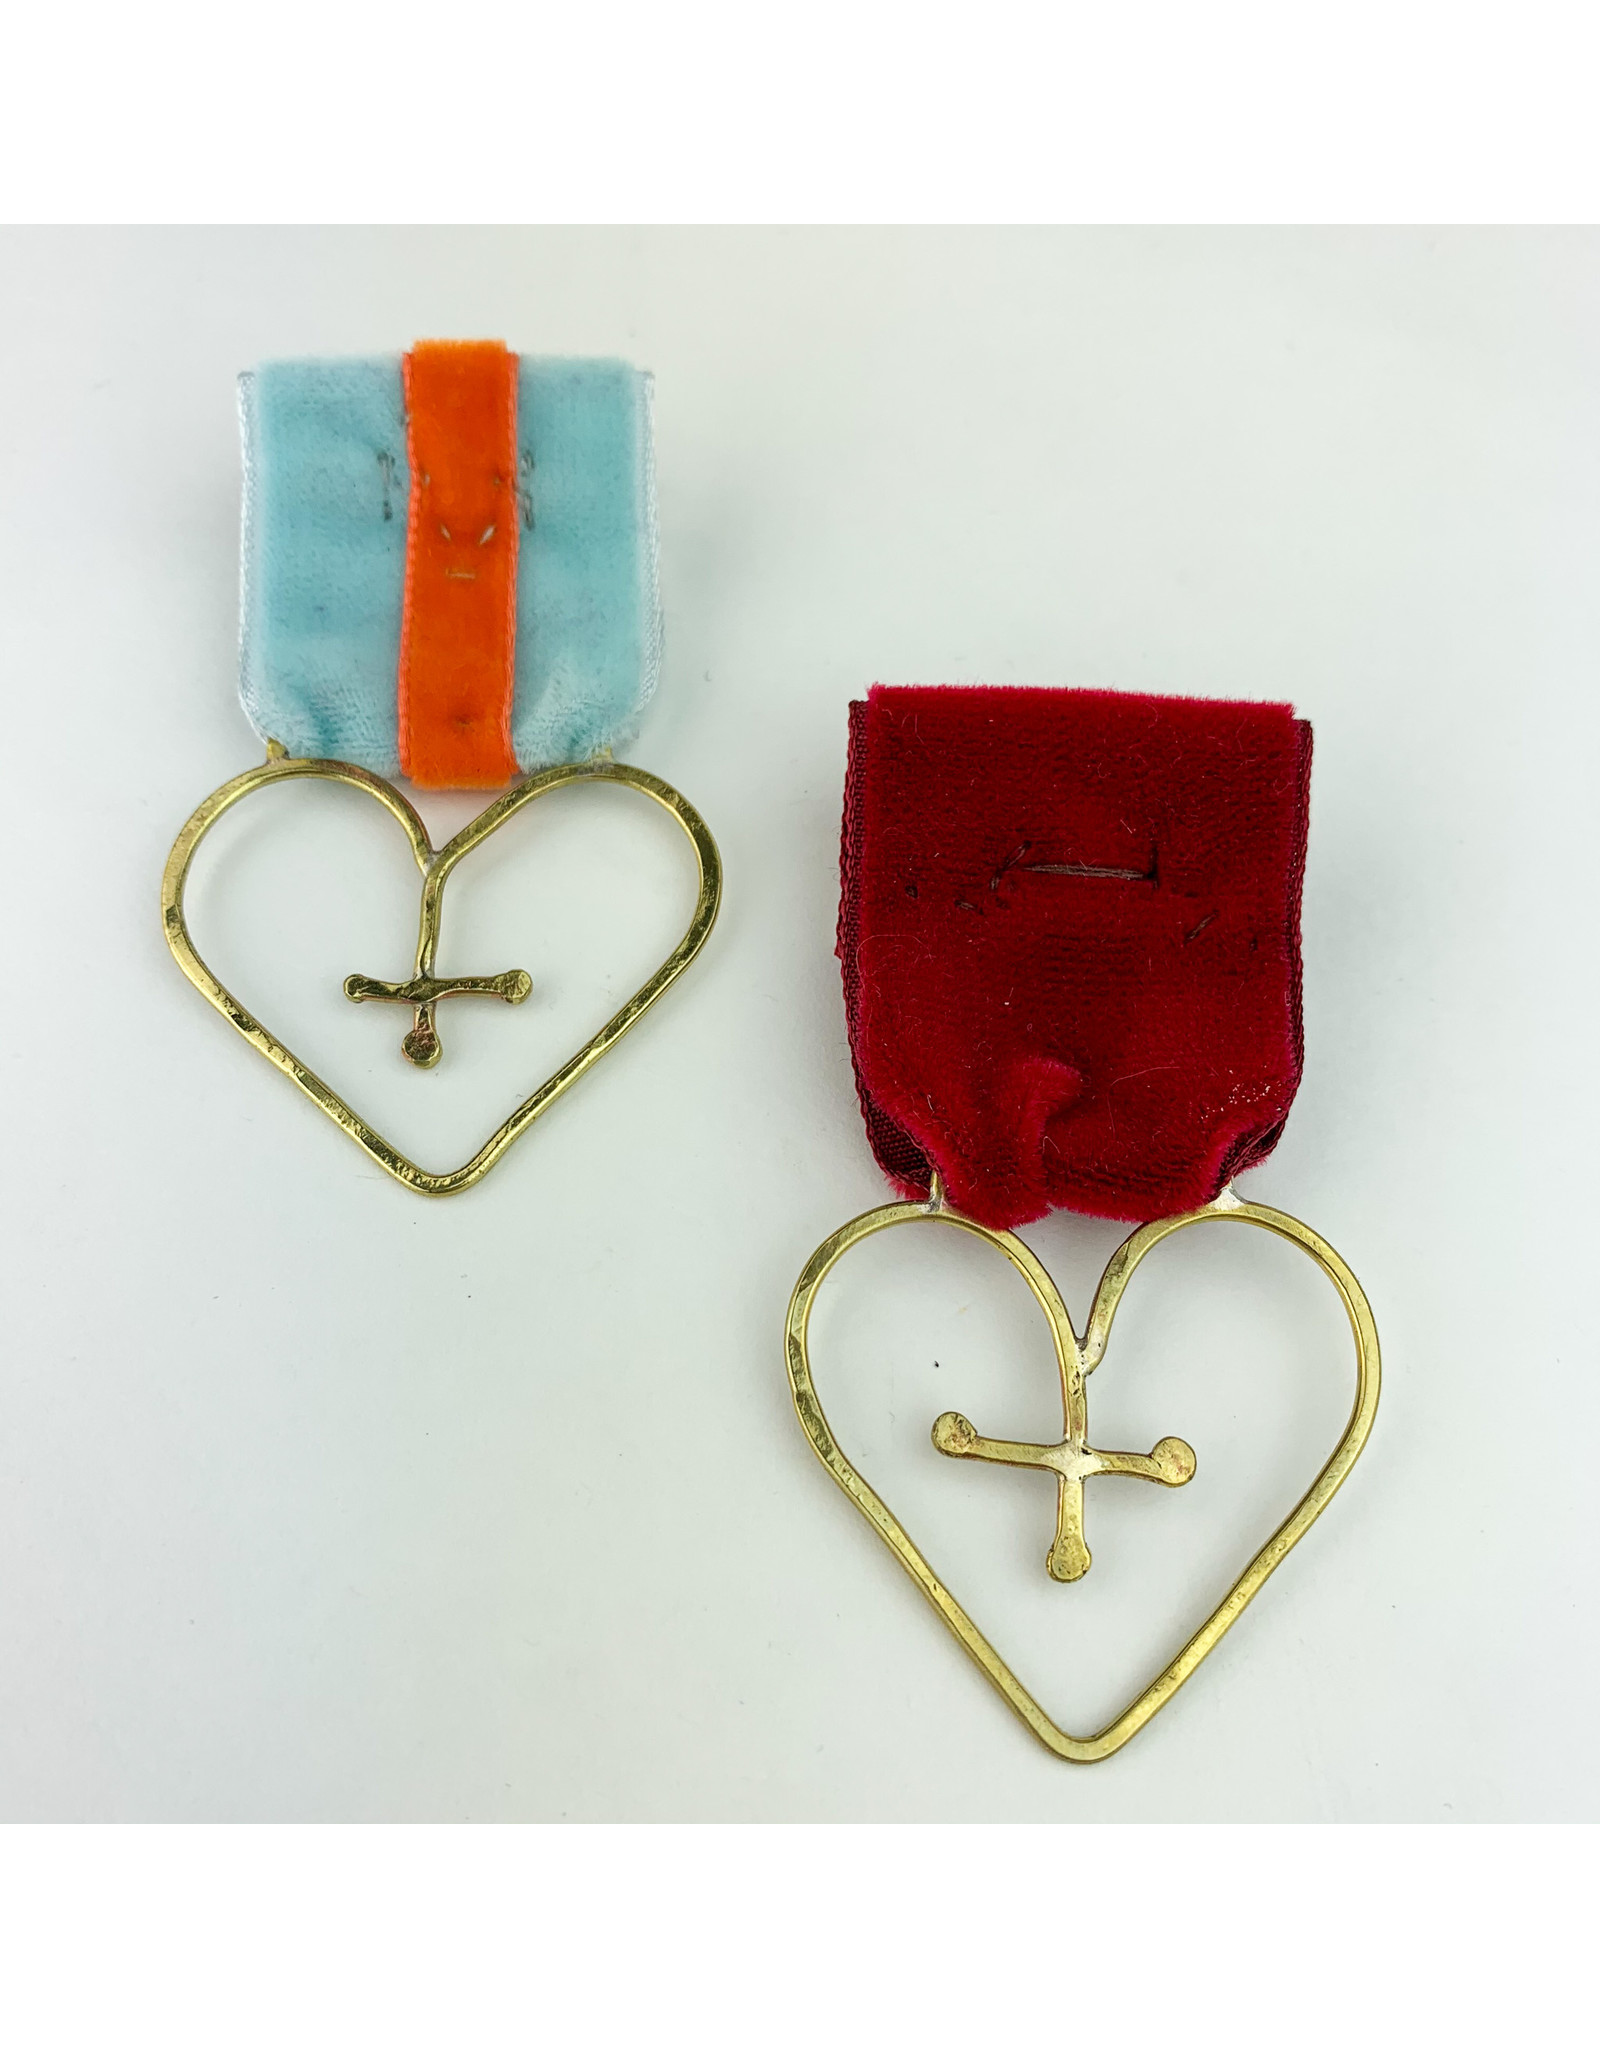 Camille Hempel Jewelry-Consignment Heart Medal 2 Consignment